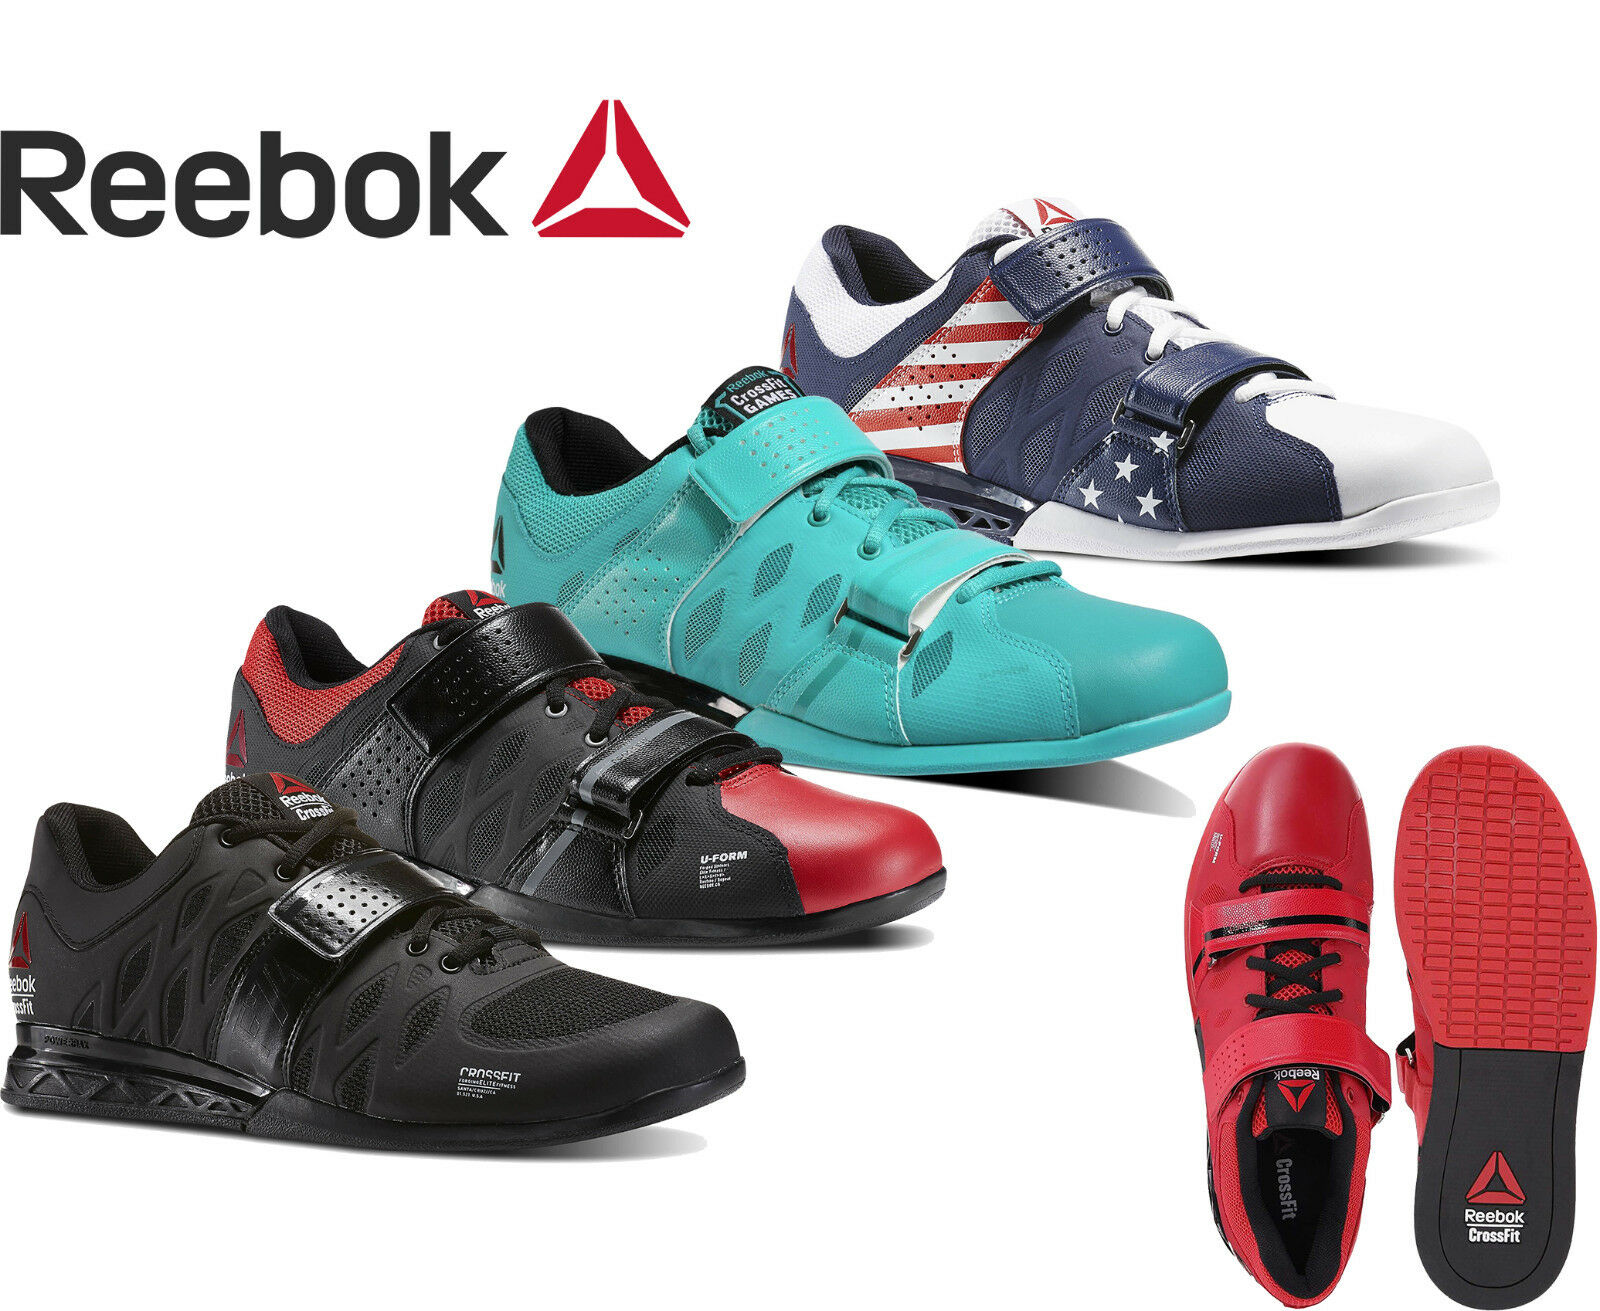 Reebok Crossfit Lifter Mens Crossfit shoes Weightlifting shoes  NEW  new listing